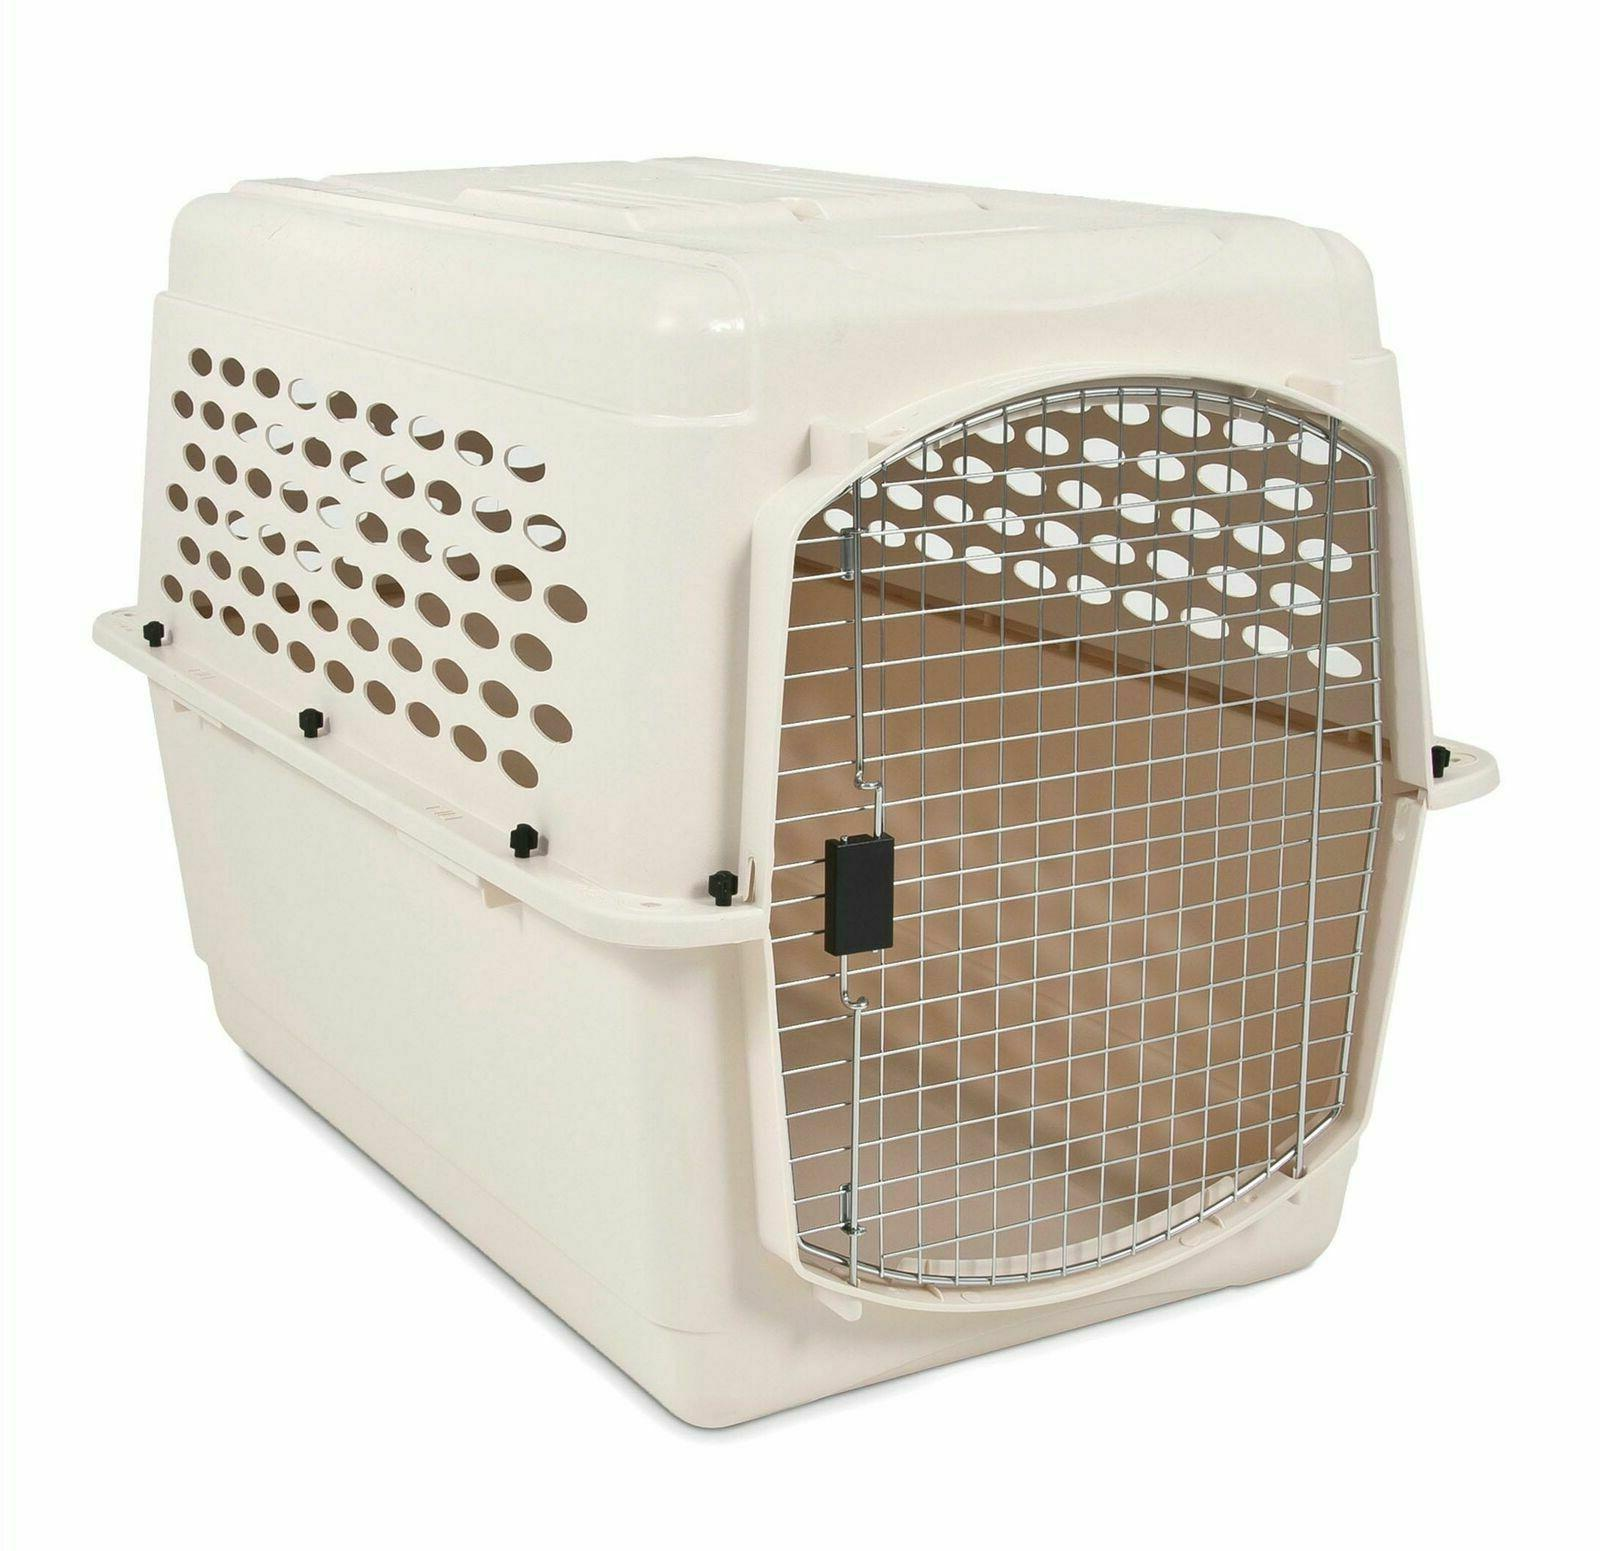 Petmate Vari Kennel Dog Pet Carrier With AHeavy Duty Plastic